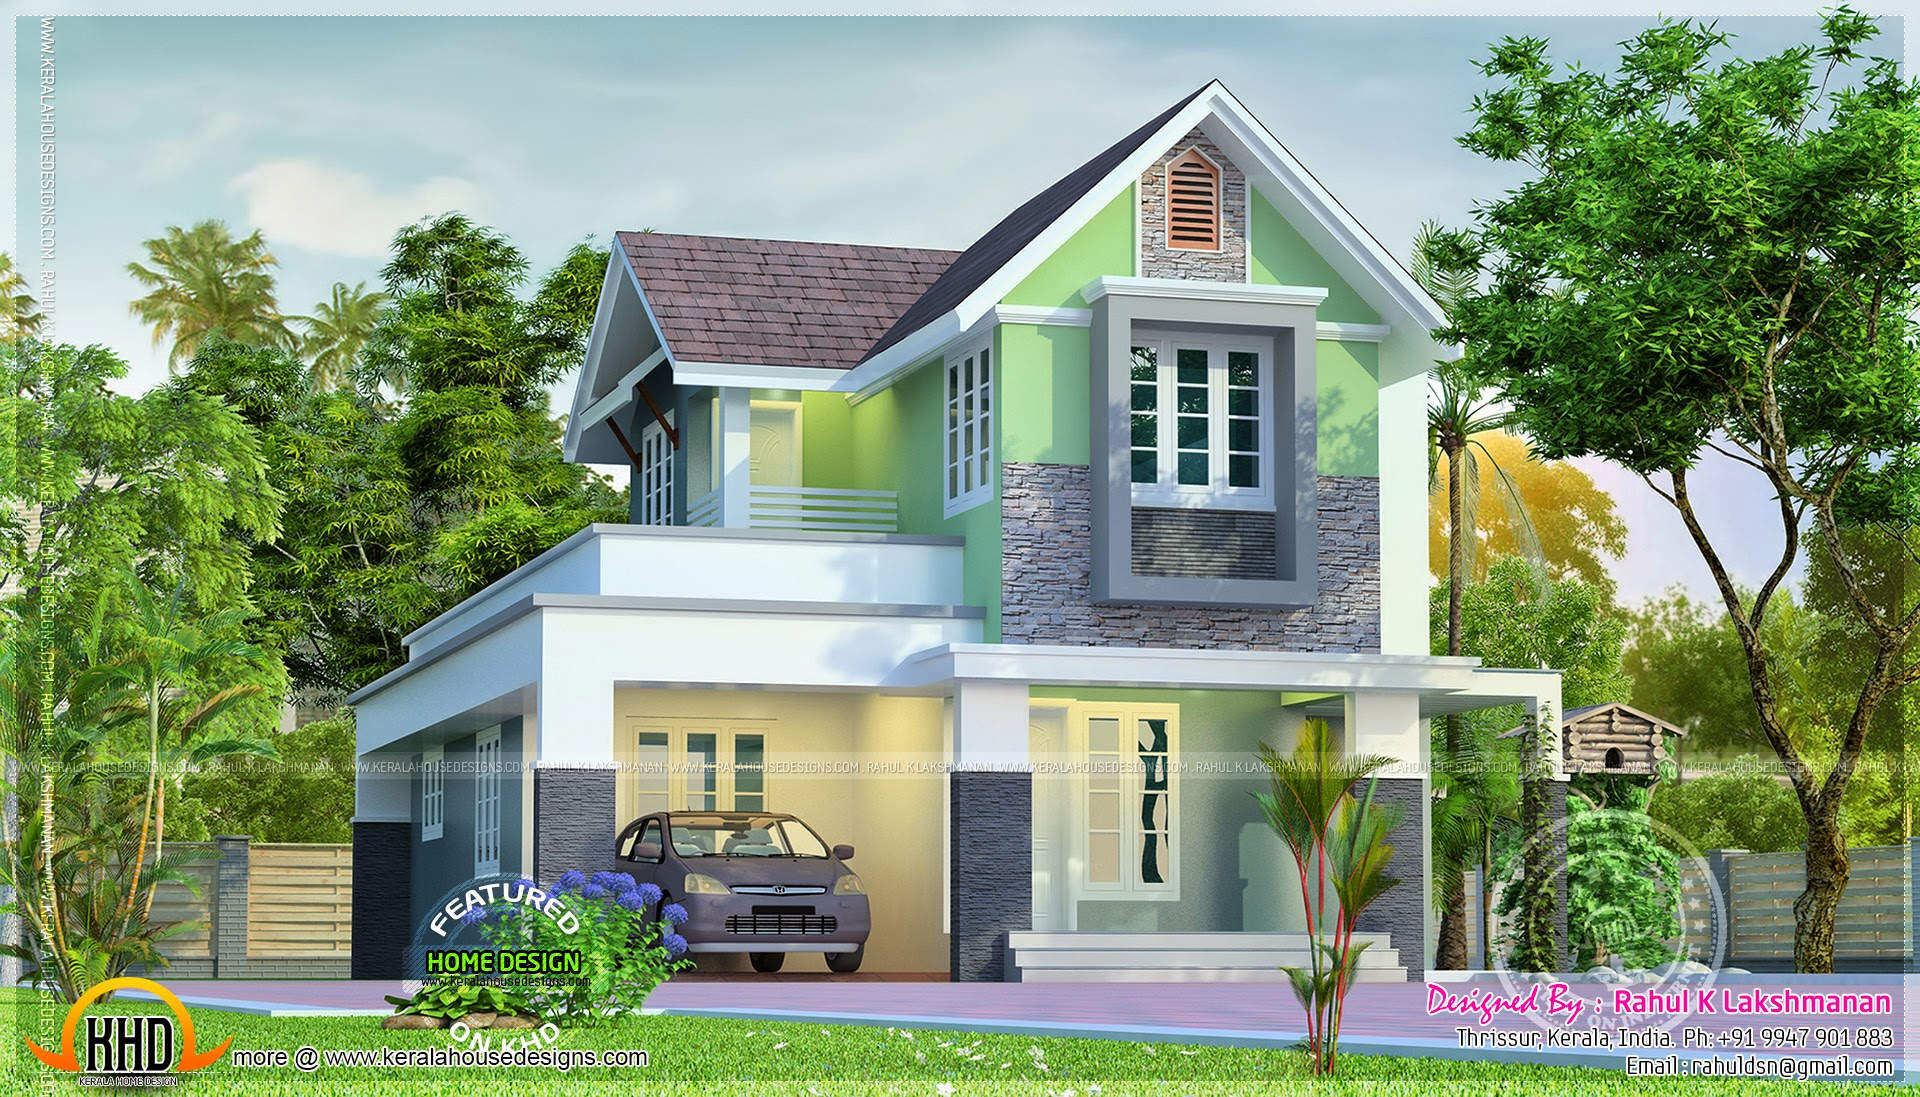 Cute little house plan kerala home design and floor plans for Photos of cute houses